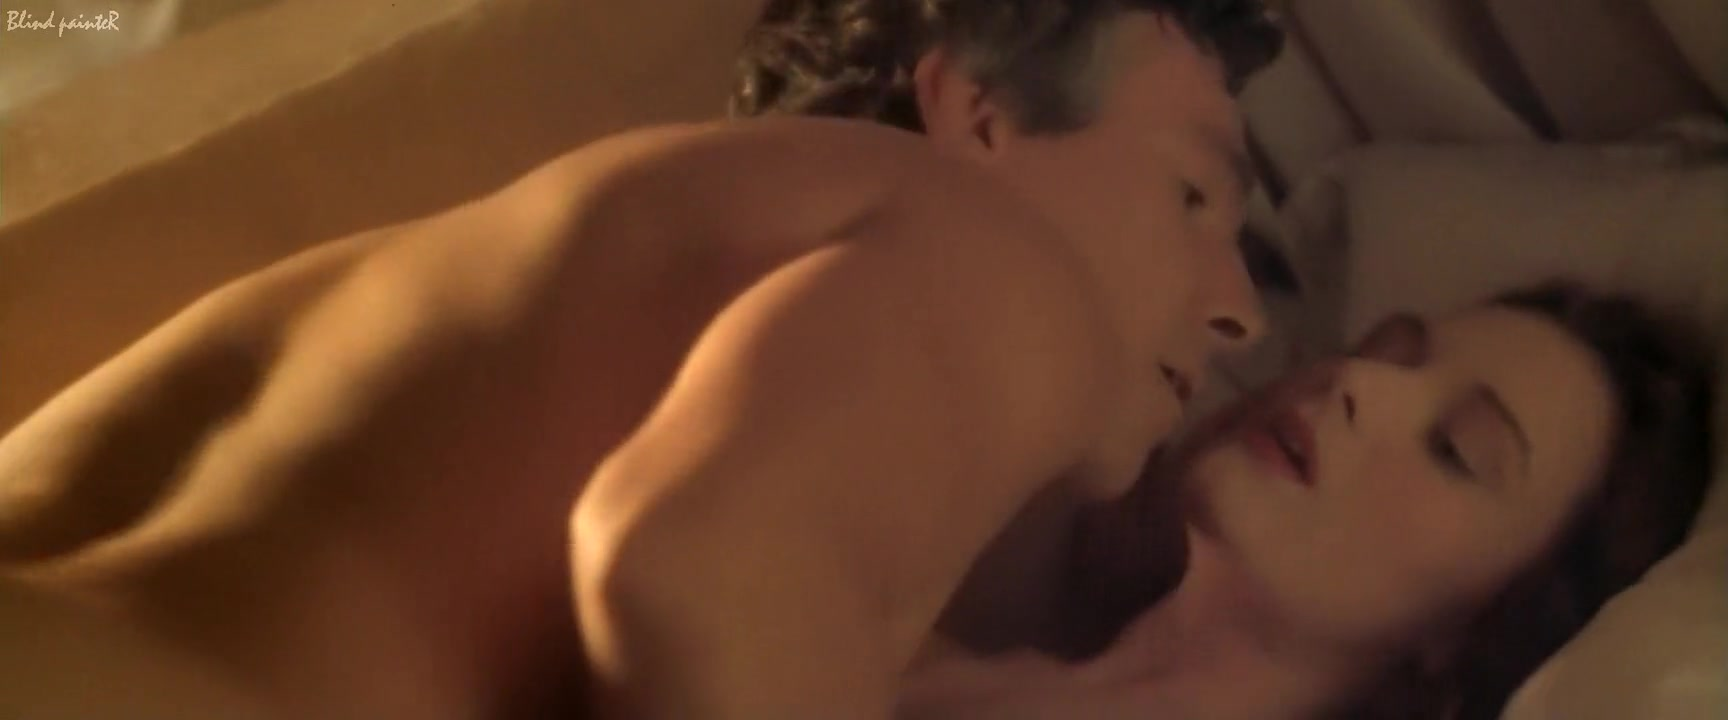 Hot xXx Video Brother fucks sister in anal gif